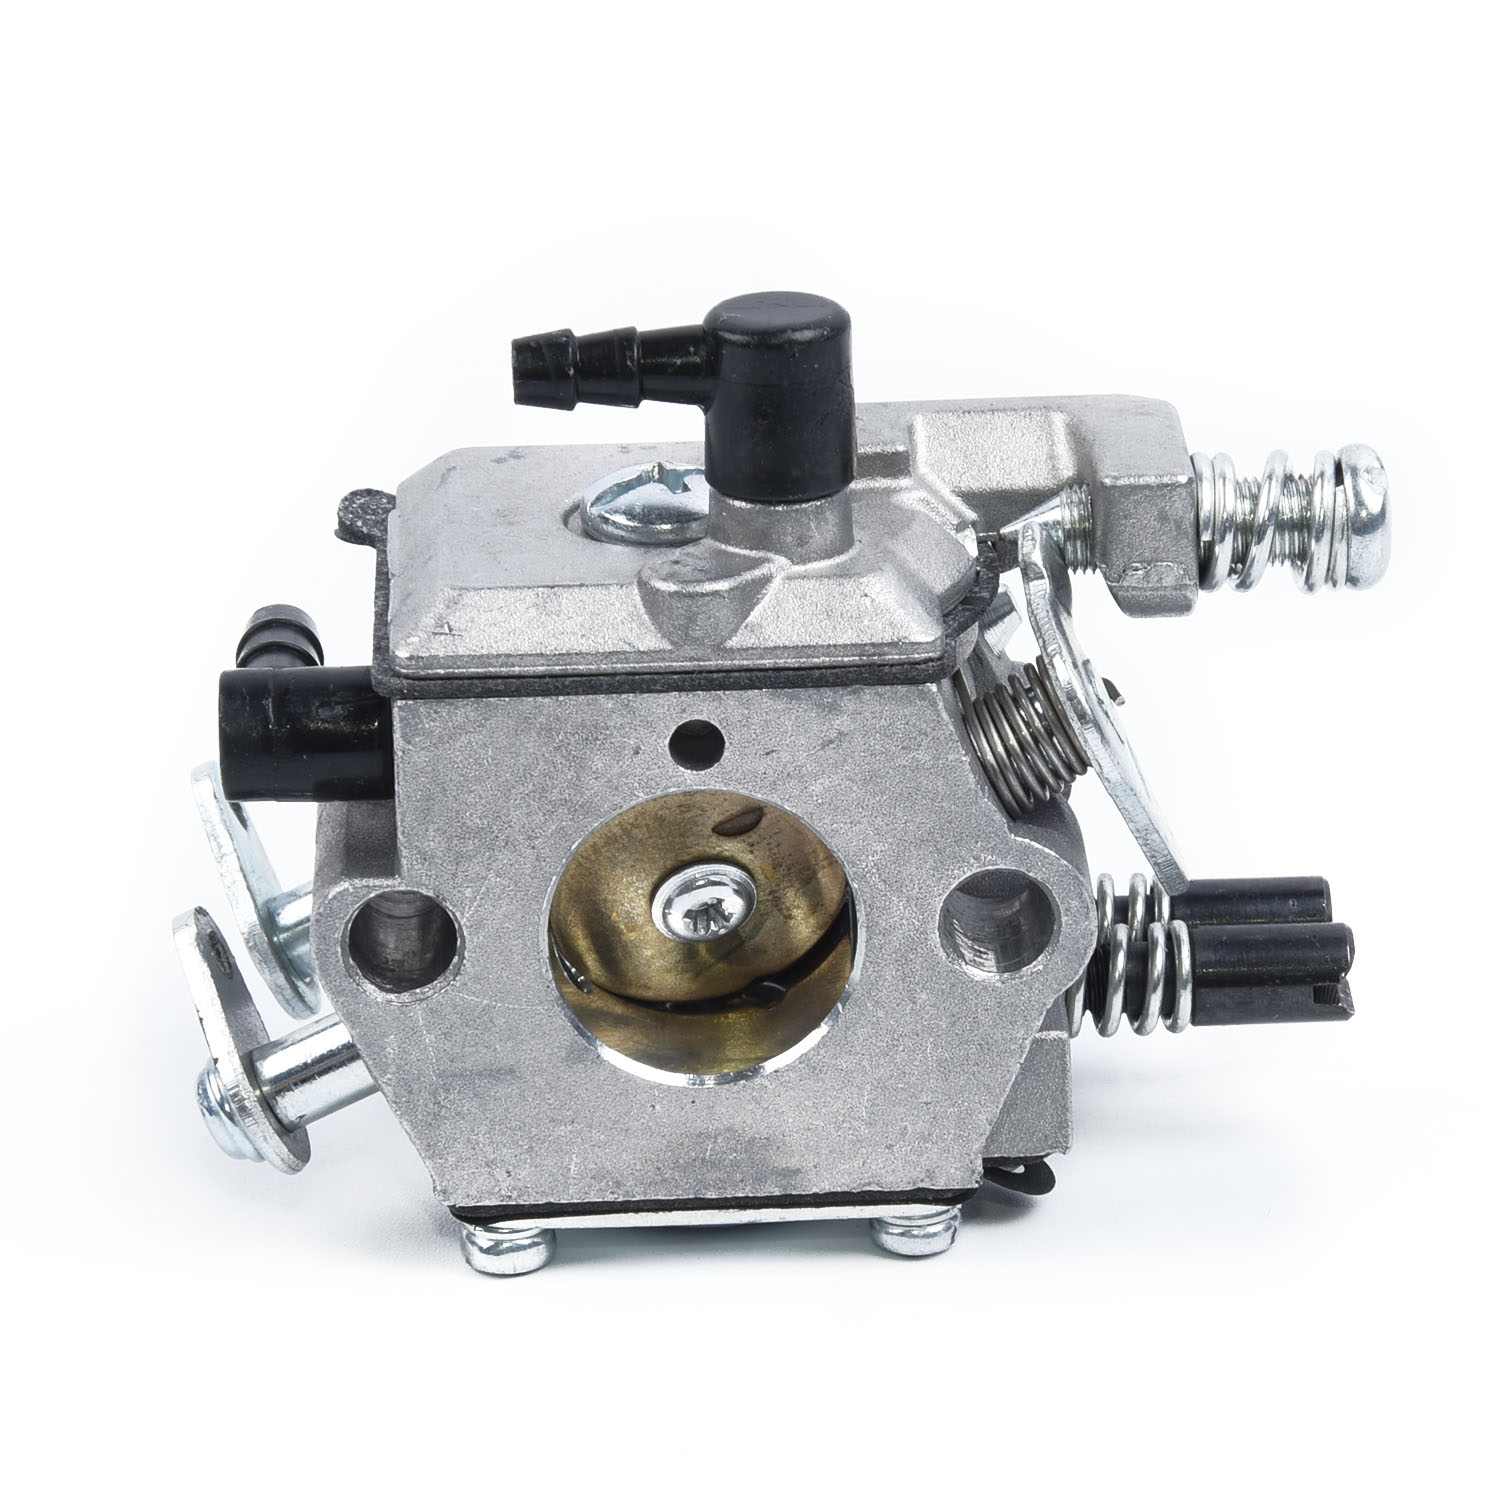 For Chinese Chainsaw 5200 4500 5800 52/45/58CC Carburetor Tool Carb 1pc For Chinese Chainsaw 4500 5200 Timbertech